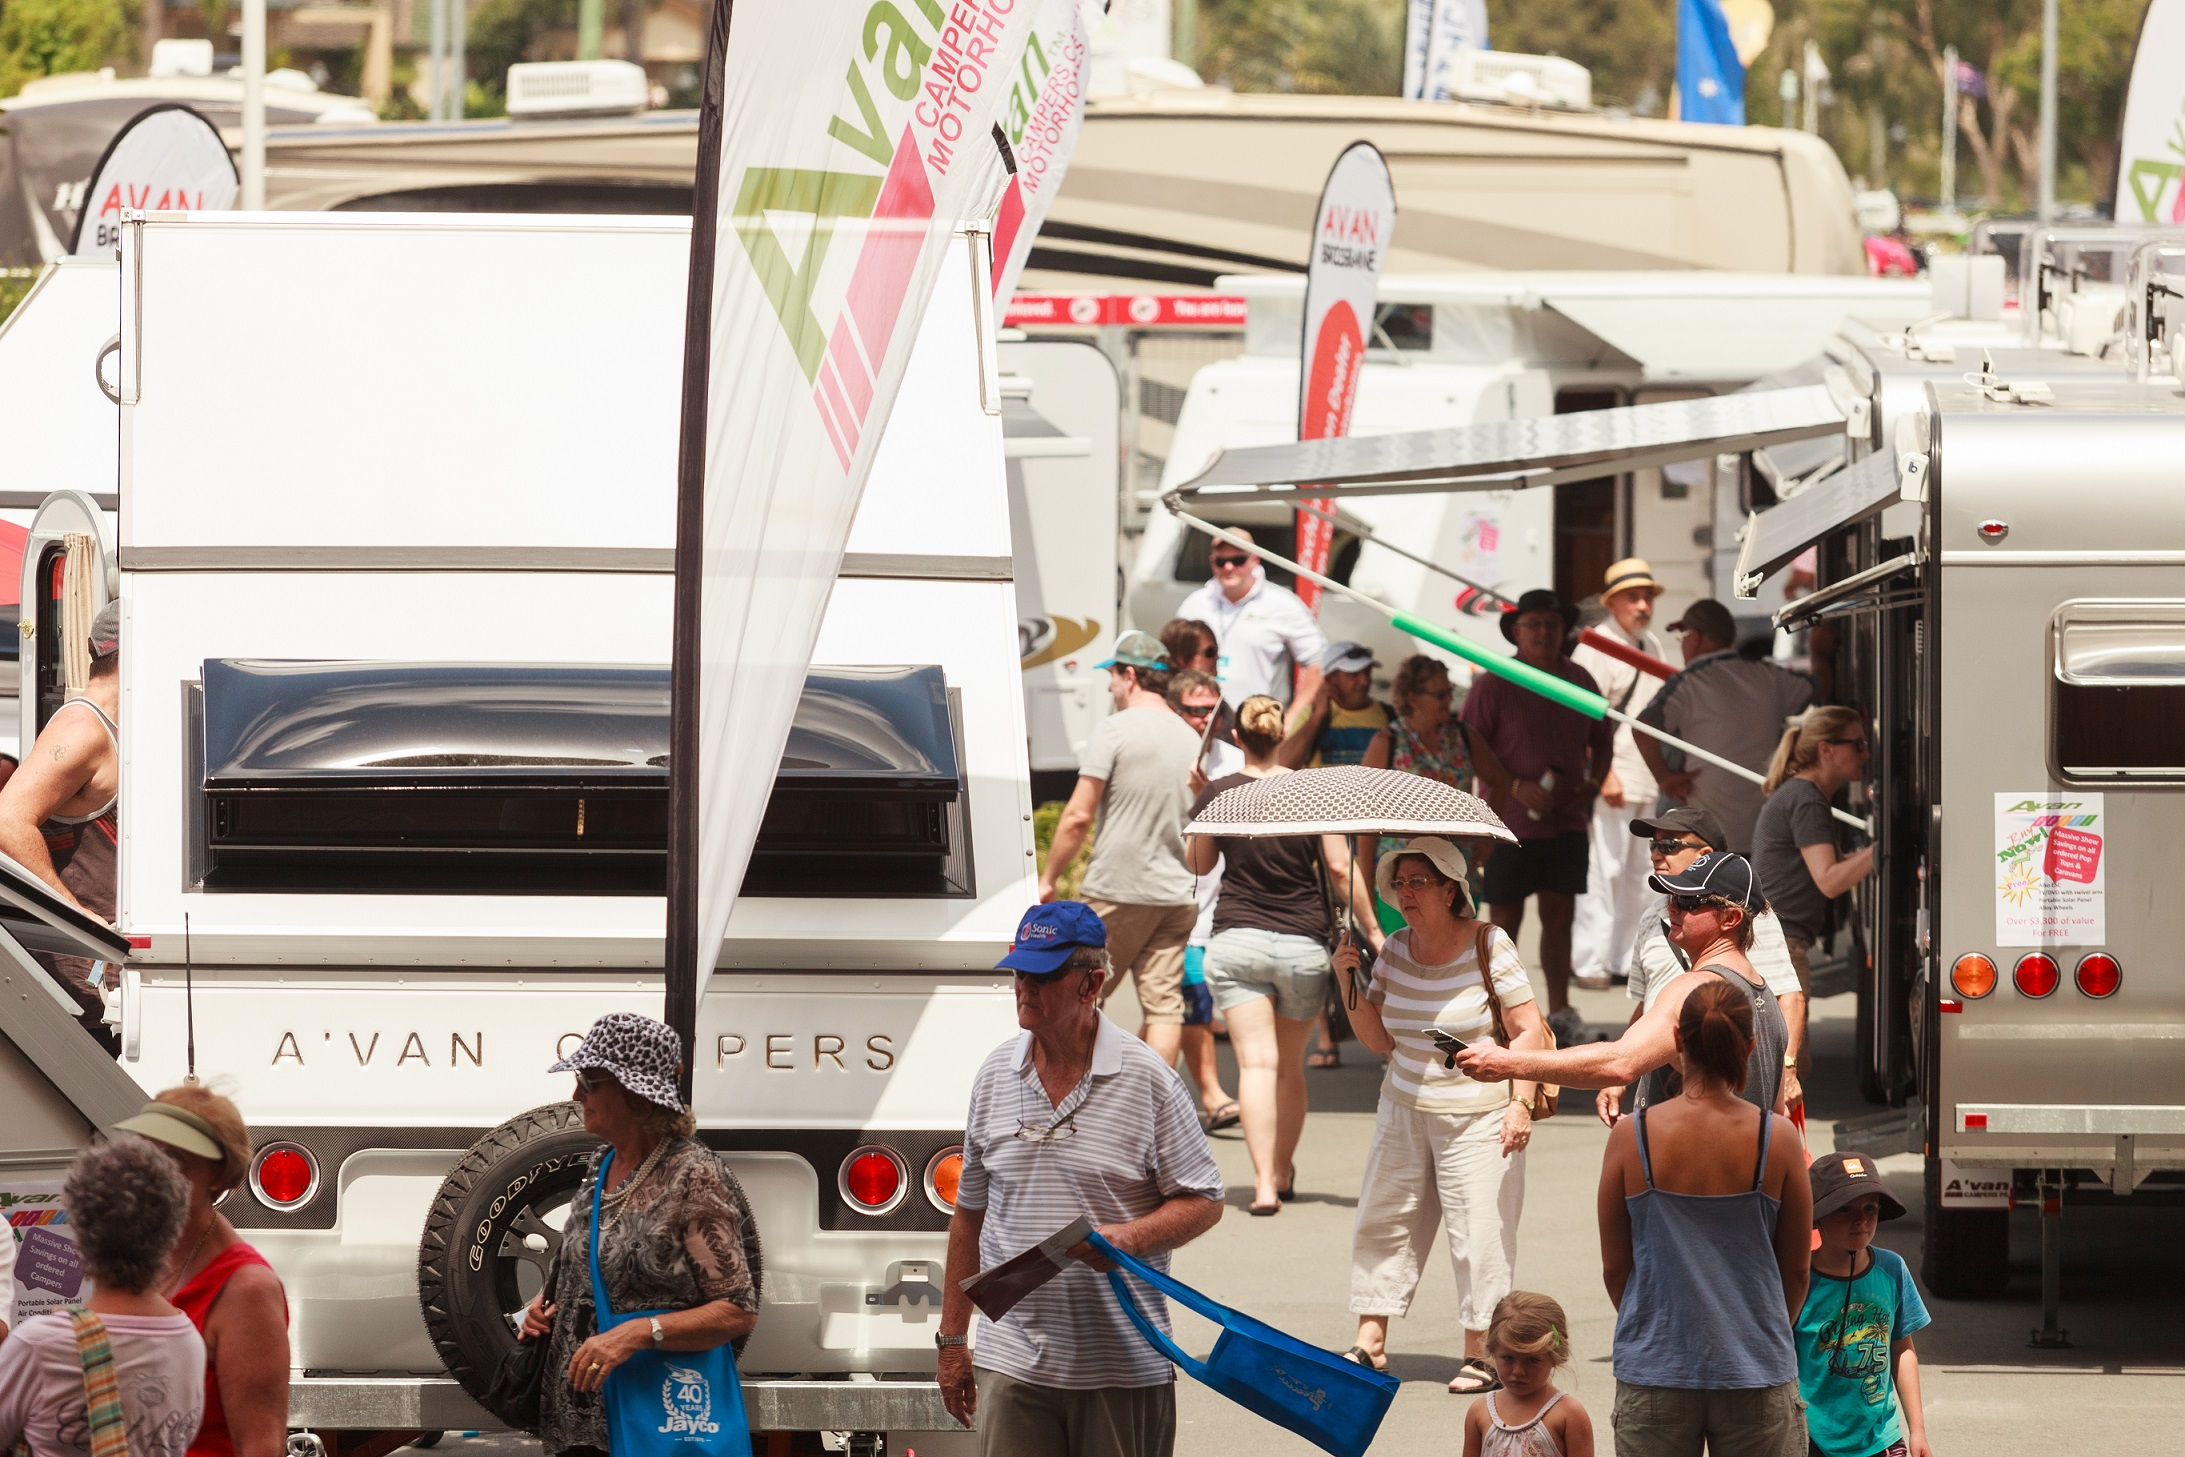 Queensland S Largest Caravan And Camping Show Rolls Into